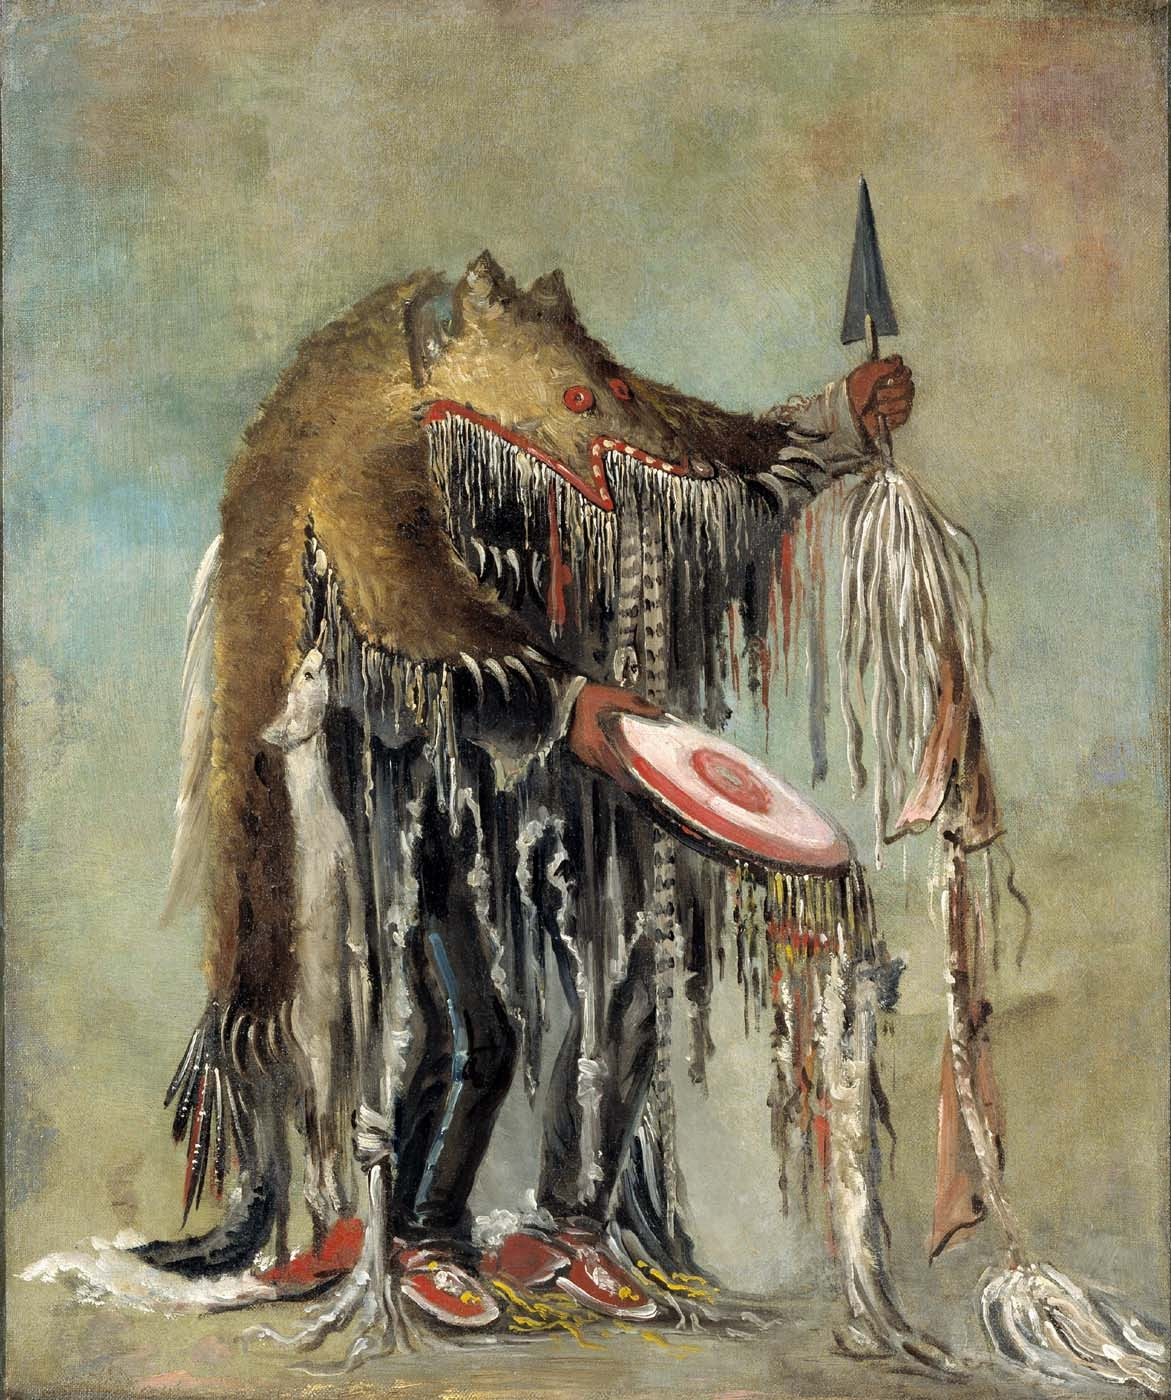 "cavetocanvas:  George Catlin, Medicine Man, Performing His Mysteries over a Dying Man, 1832 From the Smithsonian American Art Museum:  In 1832, George Catlin witnessed a dramatic ritual at Fort Union, two thousand miles northwest of St. Louis. According to the artist, the medicine man began the healing by administering roots and herbs. If this failed, he would try ""shaking his frightful rattles, and singing songs of incantation."" Catlin wrote that the medicine man's clothing often consisted of ""the skins of snakes, and frogs, and bats,—-beaks and tows and tails of birds,—-hoofs of deer, goats, and antelopes,"" each possessing ""anomalies or deformities,"" which gave them their healing power. This healer wore the skin of a yellow bear attached with the hides of snakes. Catlin actually owned the costume, and he sometimes wore it to enhance the spectacle of his Indian Gallery."